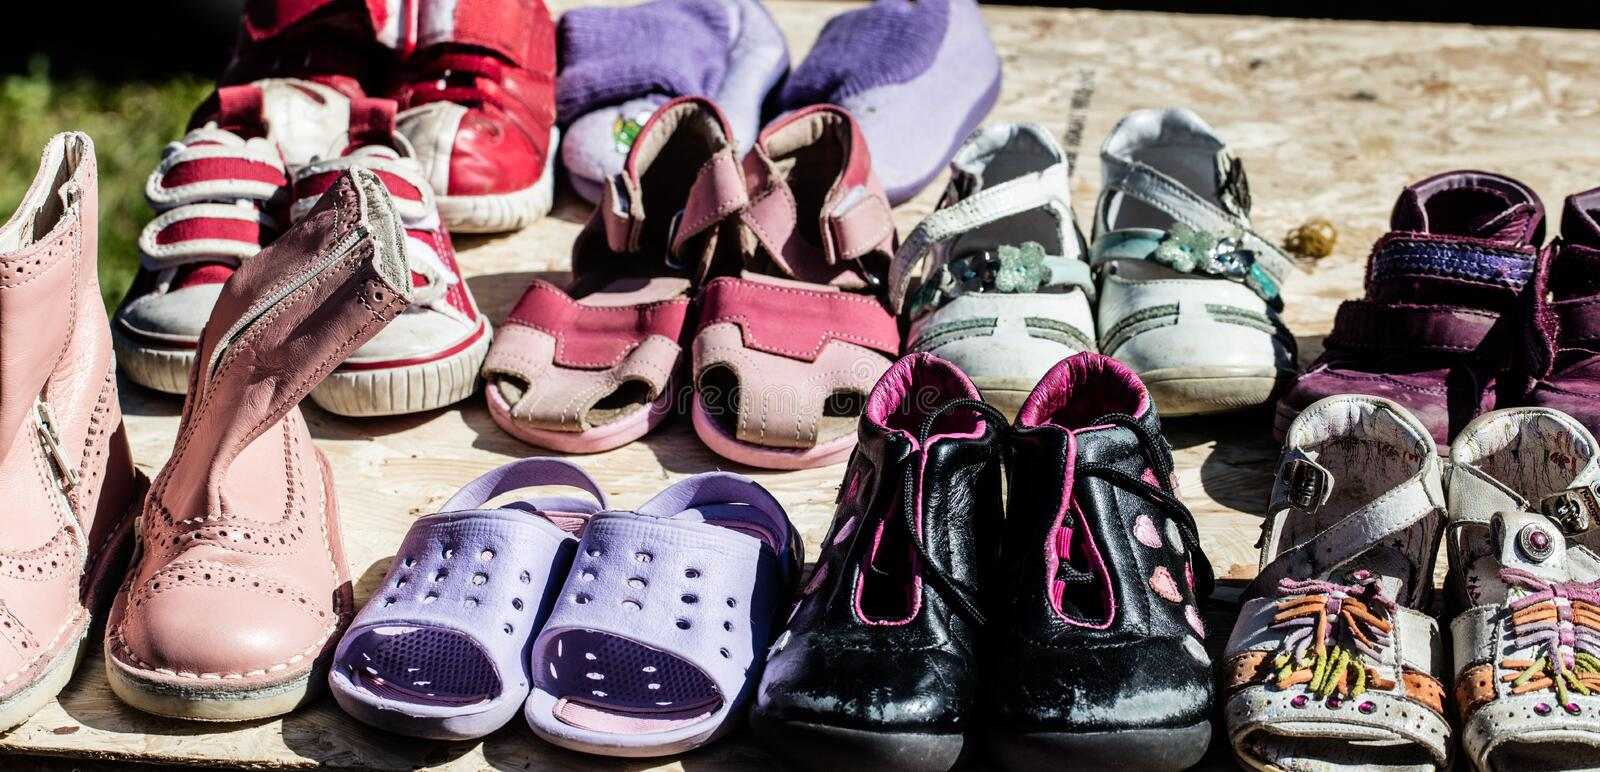 Used child and baby shoes for reusing at flea market royalty free stock photo